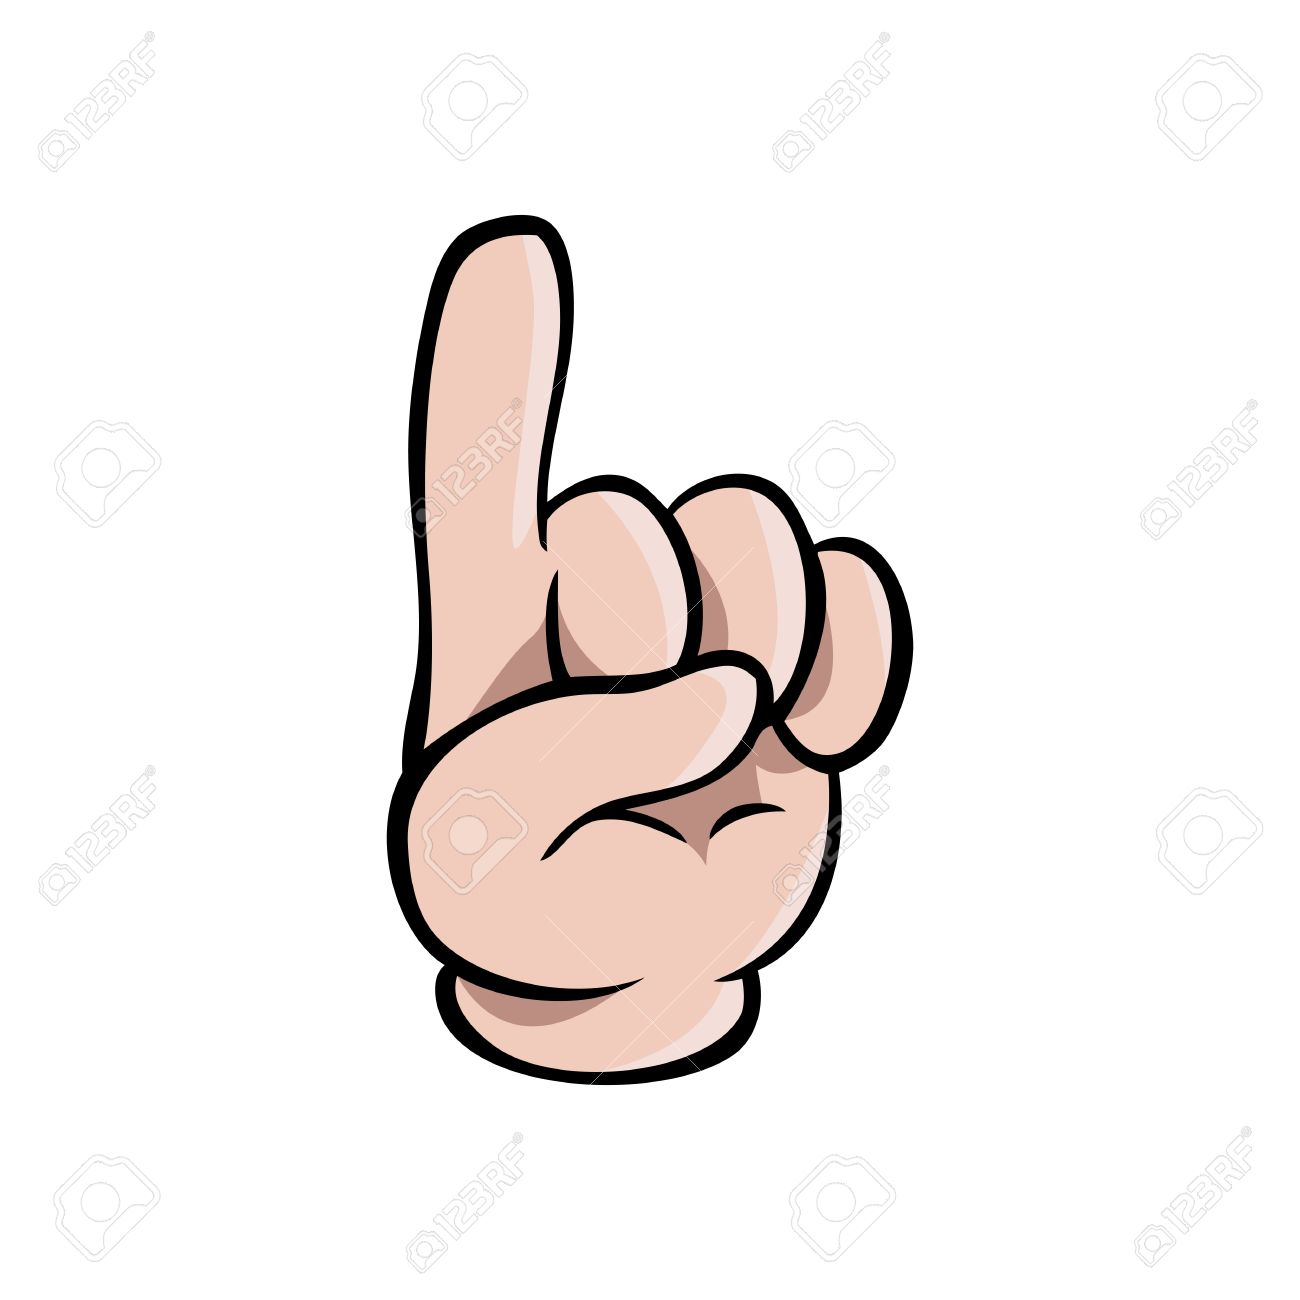 human cartoon hand showing one finger or pointing upwards royalty free cliparts vectors and stock illustration image 73532736 human cartoon hand showing one finger or pointing upwards